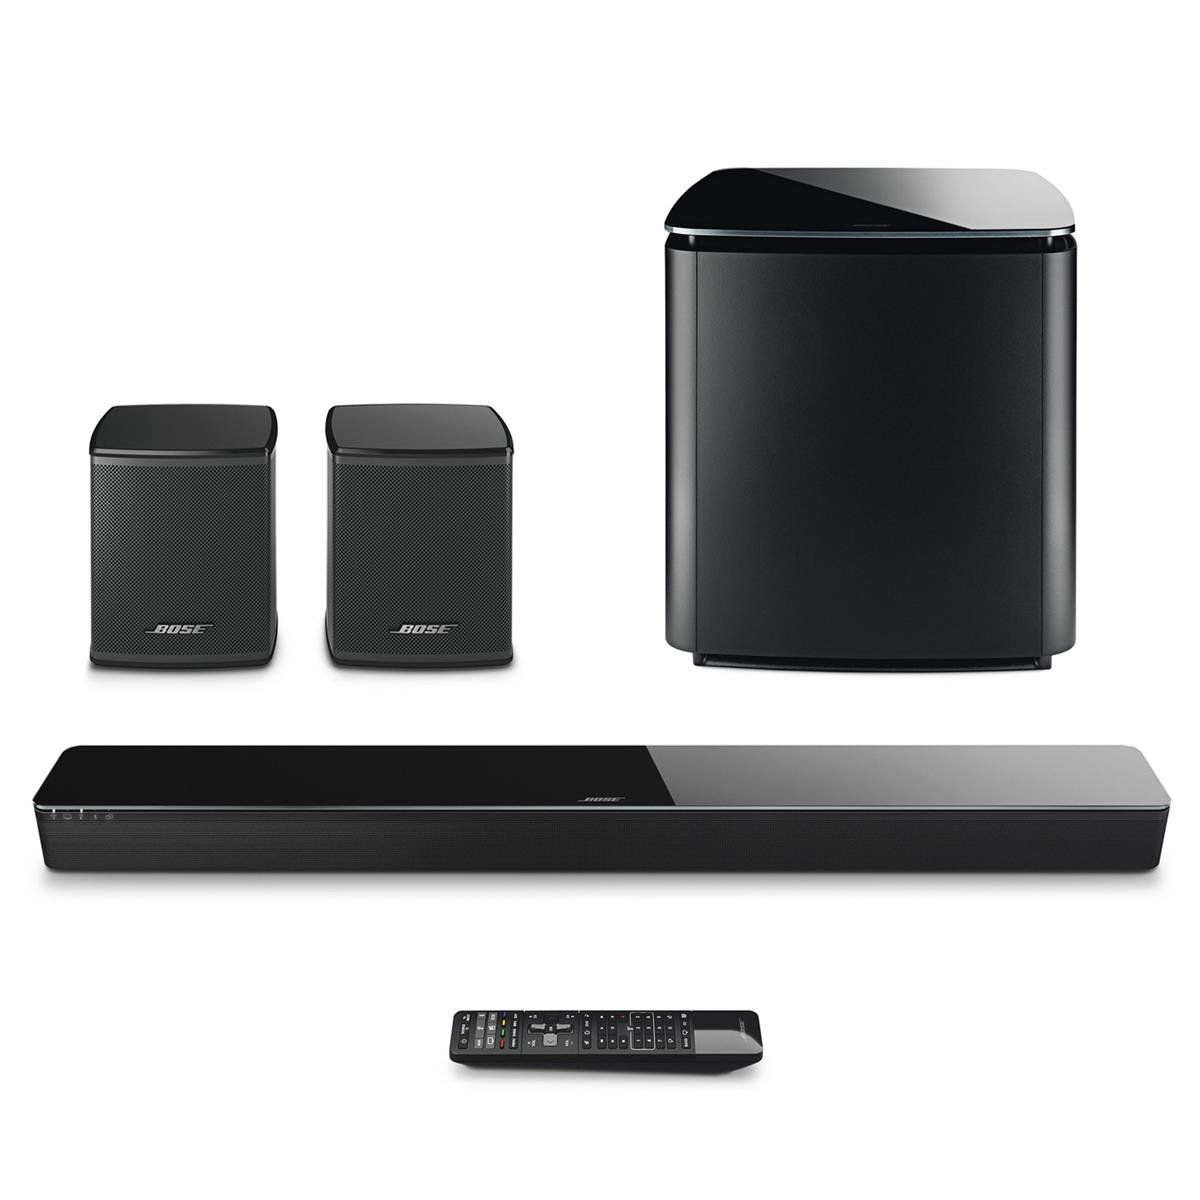 bose soundtouch 300 soundbar bundle with wireless acoustimass 300 bass module bose virtually. Black Bedroom Furniture Sets. Home Design Ideas